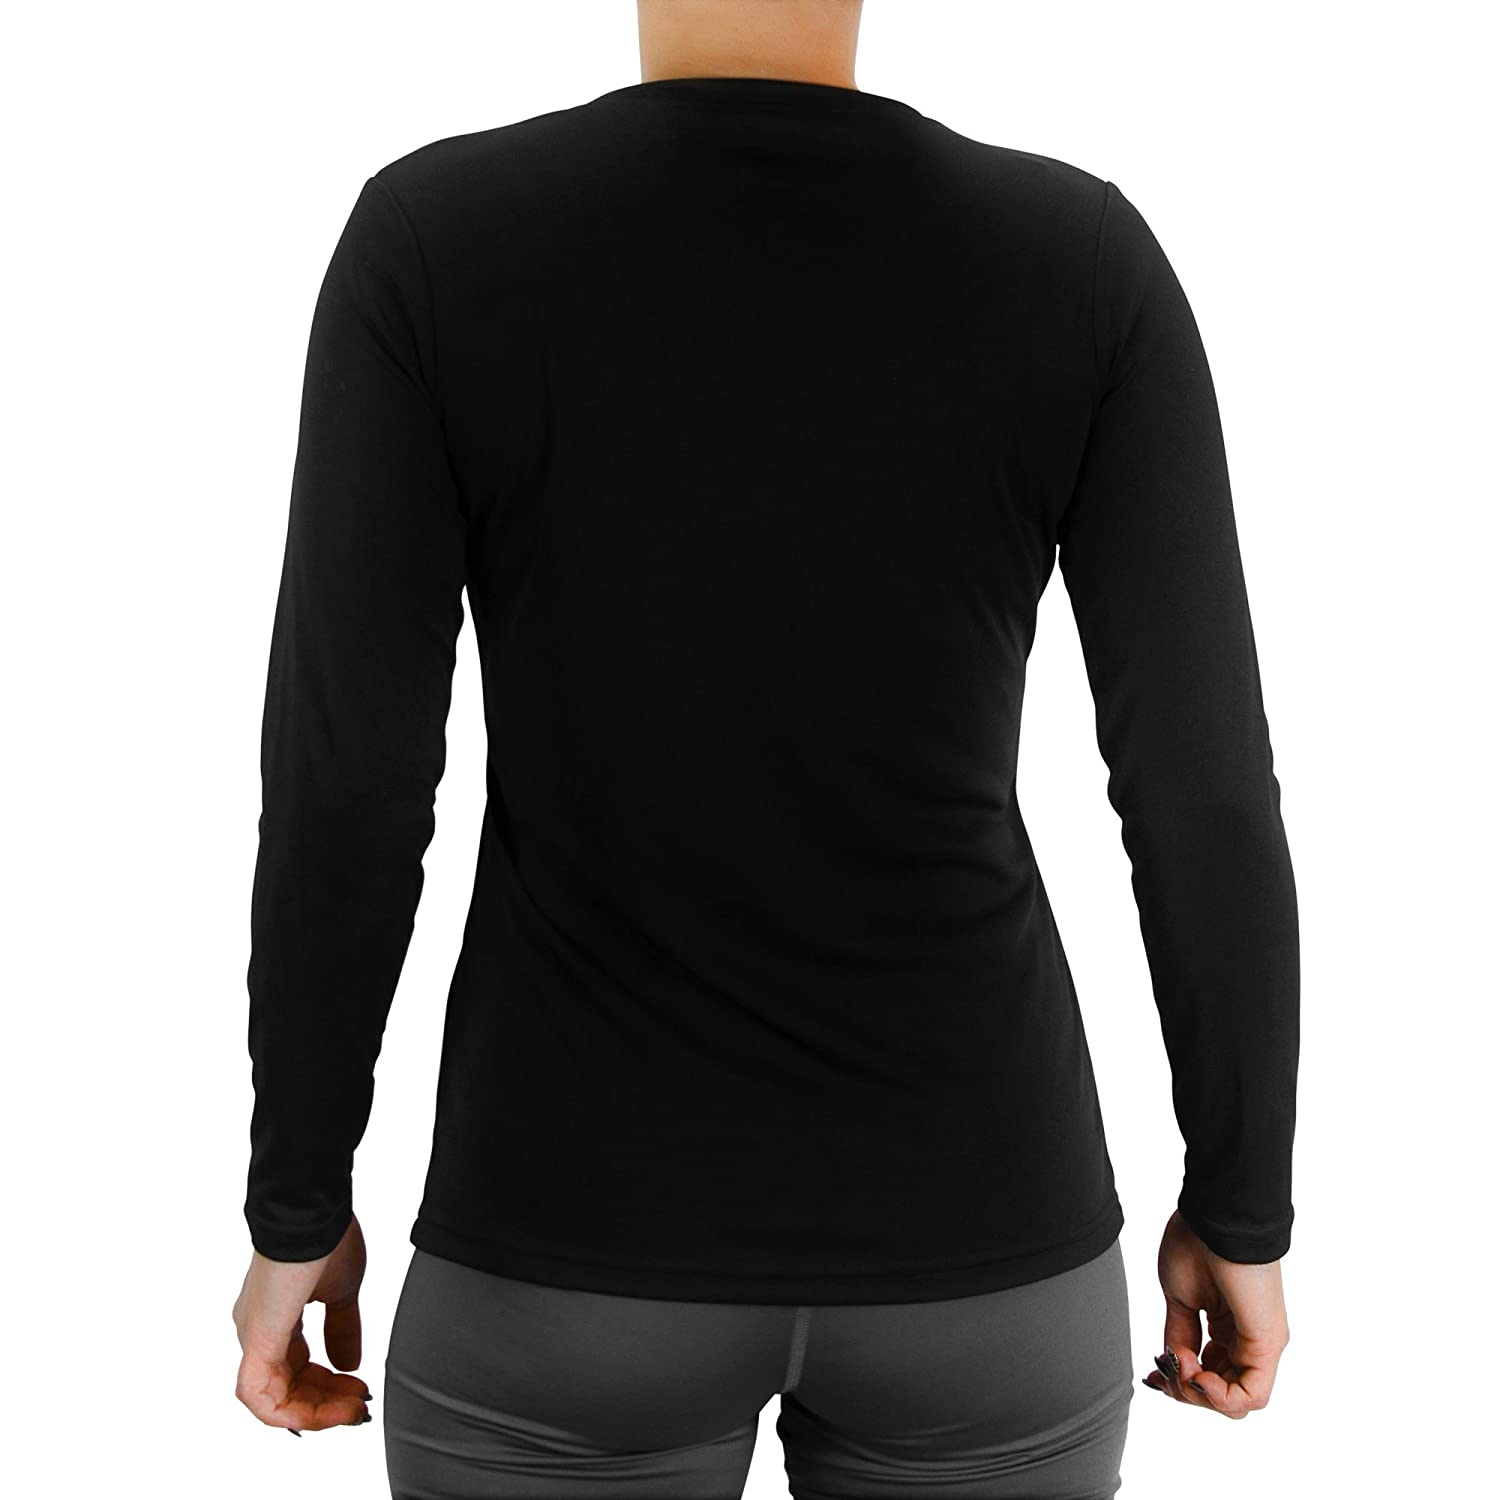 f974ff61e One Five Basics Women s Long Sleeve Athletic Performance Top With Moisture  Wicking Technology and 50+ UPF UV Protection at Amazon Women s Clothing  store